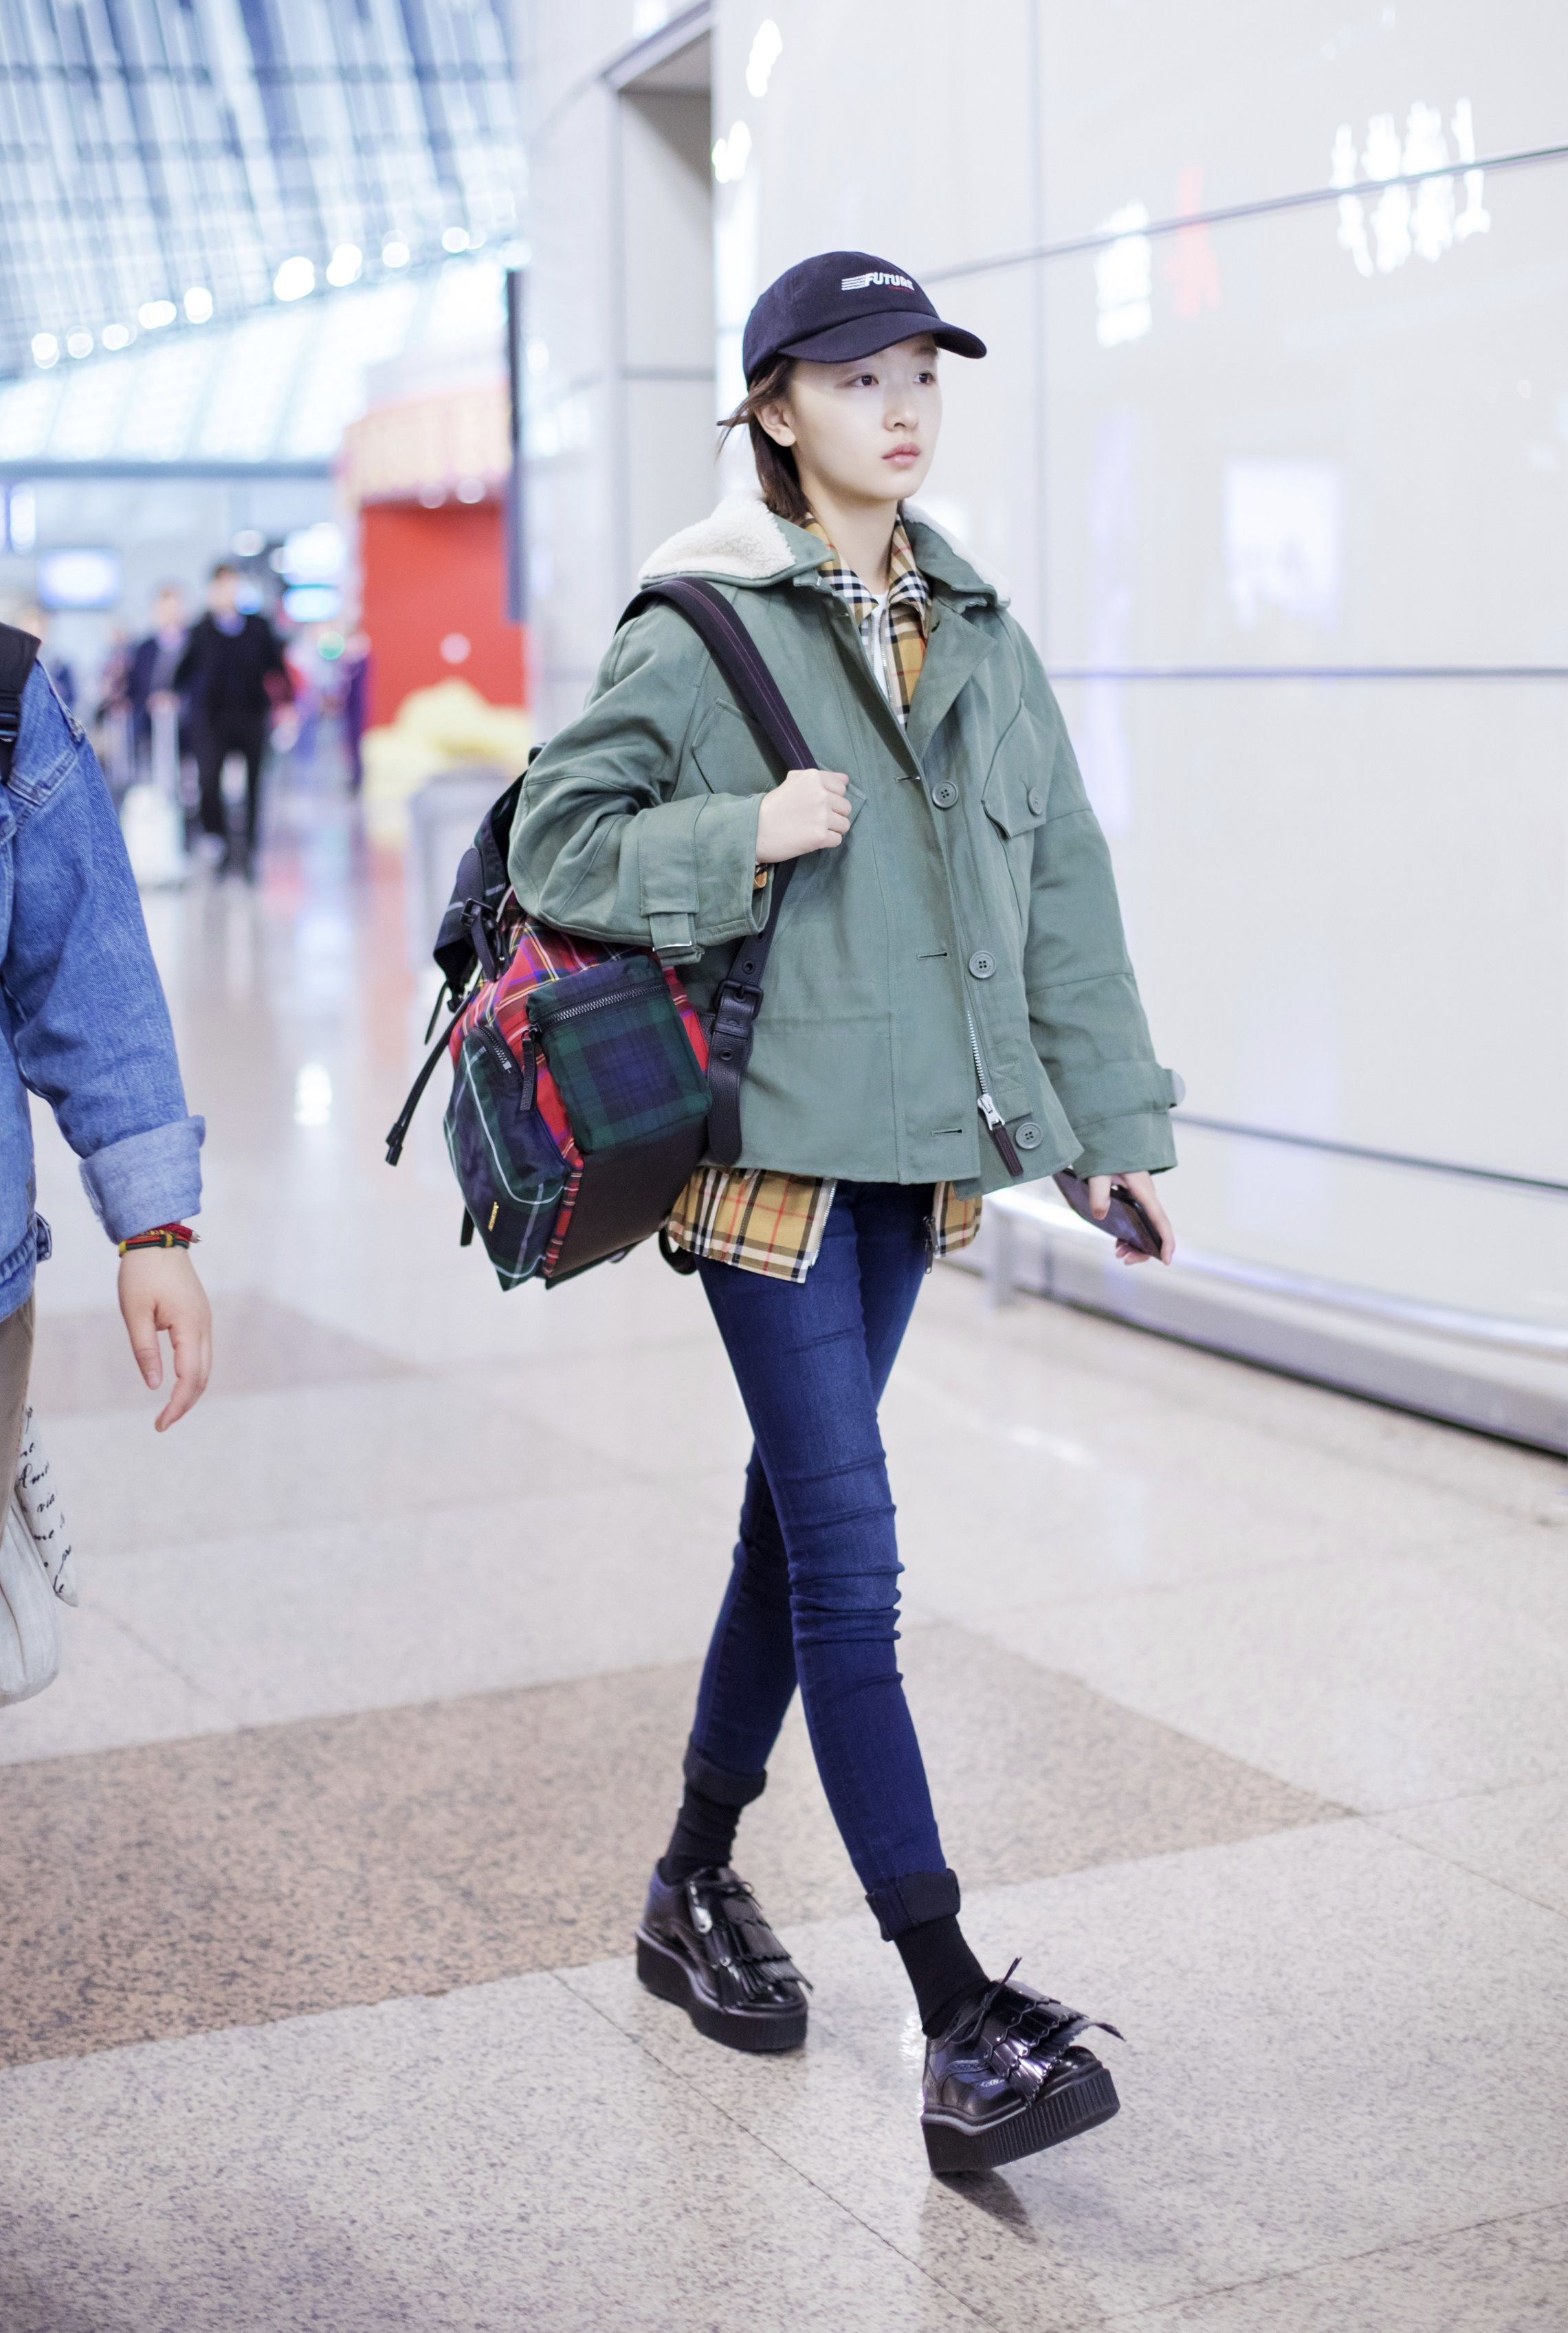 df874a9c24ff4  ZhouDongyu travelling to  LFW